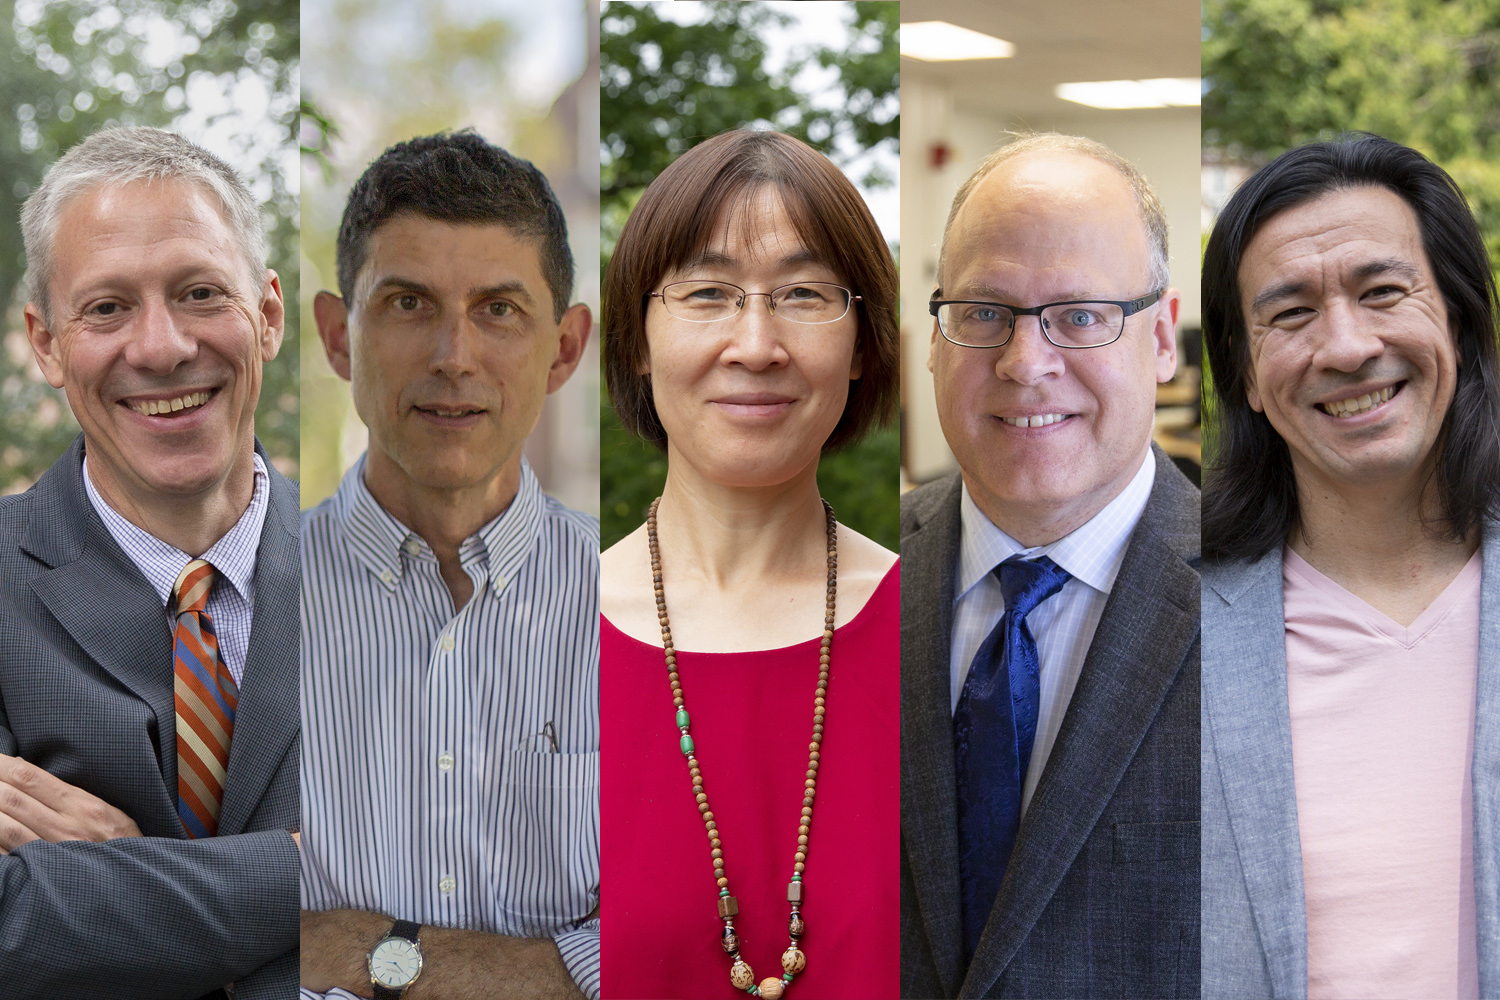 The College of Liberal Arts and Sciences welcomed five new heads of departments, centers, and institutes this year. From left to right: Associate Professor of History Mark Healey; Professor and Head of History Mark Healey; Professor of Anthropology and Director of El Instituto Sam Martinez; Professor and Director of Geography Cindy Zhang; Professor and Head of Physics Barry Wells; and Associate Professor of History and Director of Asian and Asian American Studies Jason Chang.